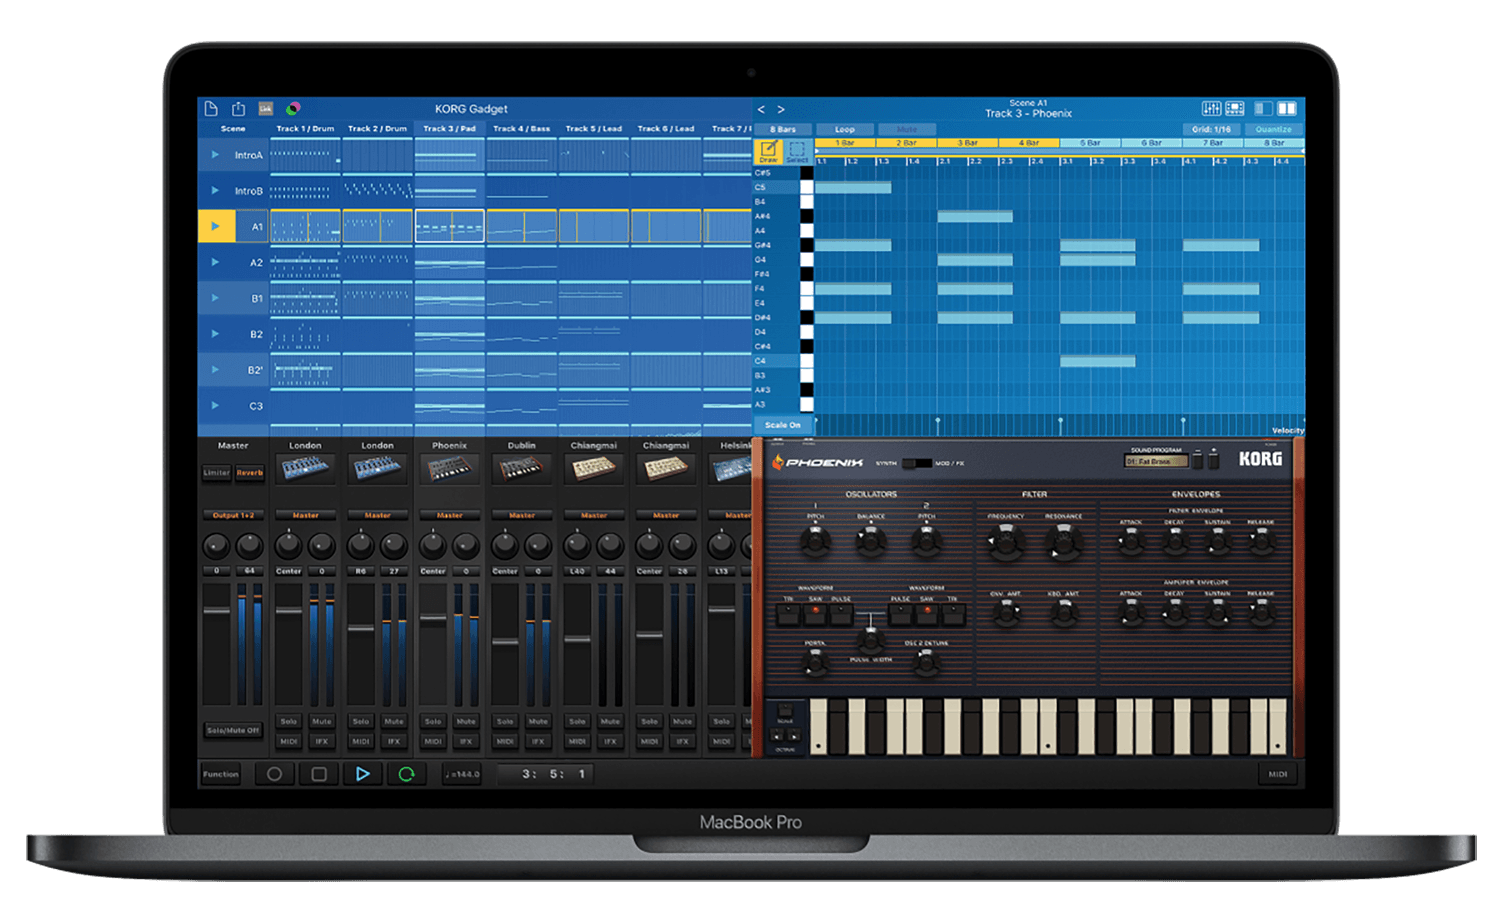 korg s gadget for mac review an absolute must have musictech net korg s ios based daw makes the transition to the fully fledged mac environment beefing up its live integration and offering its gadgets as separate